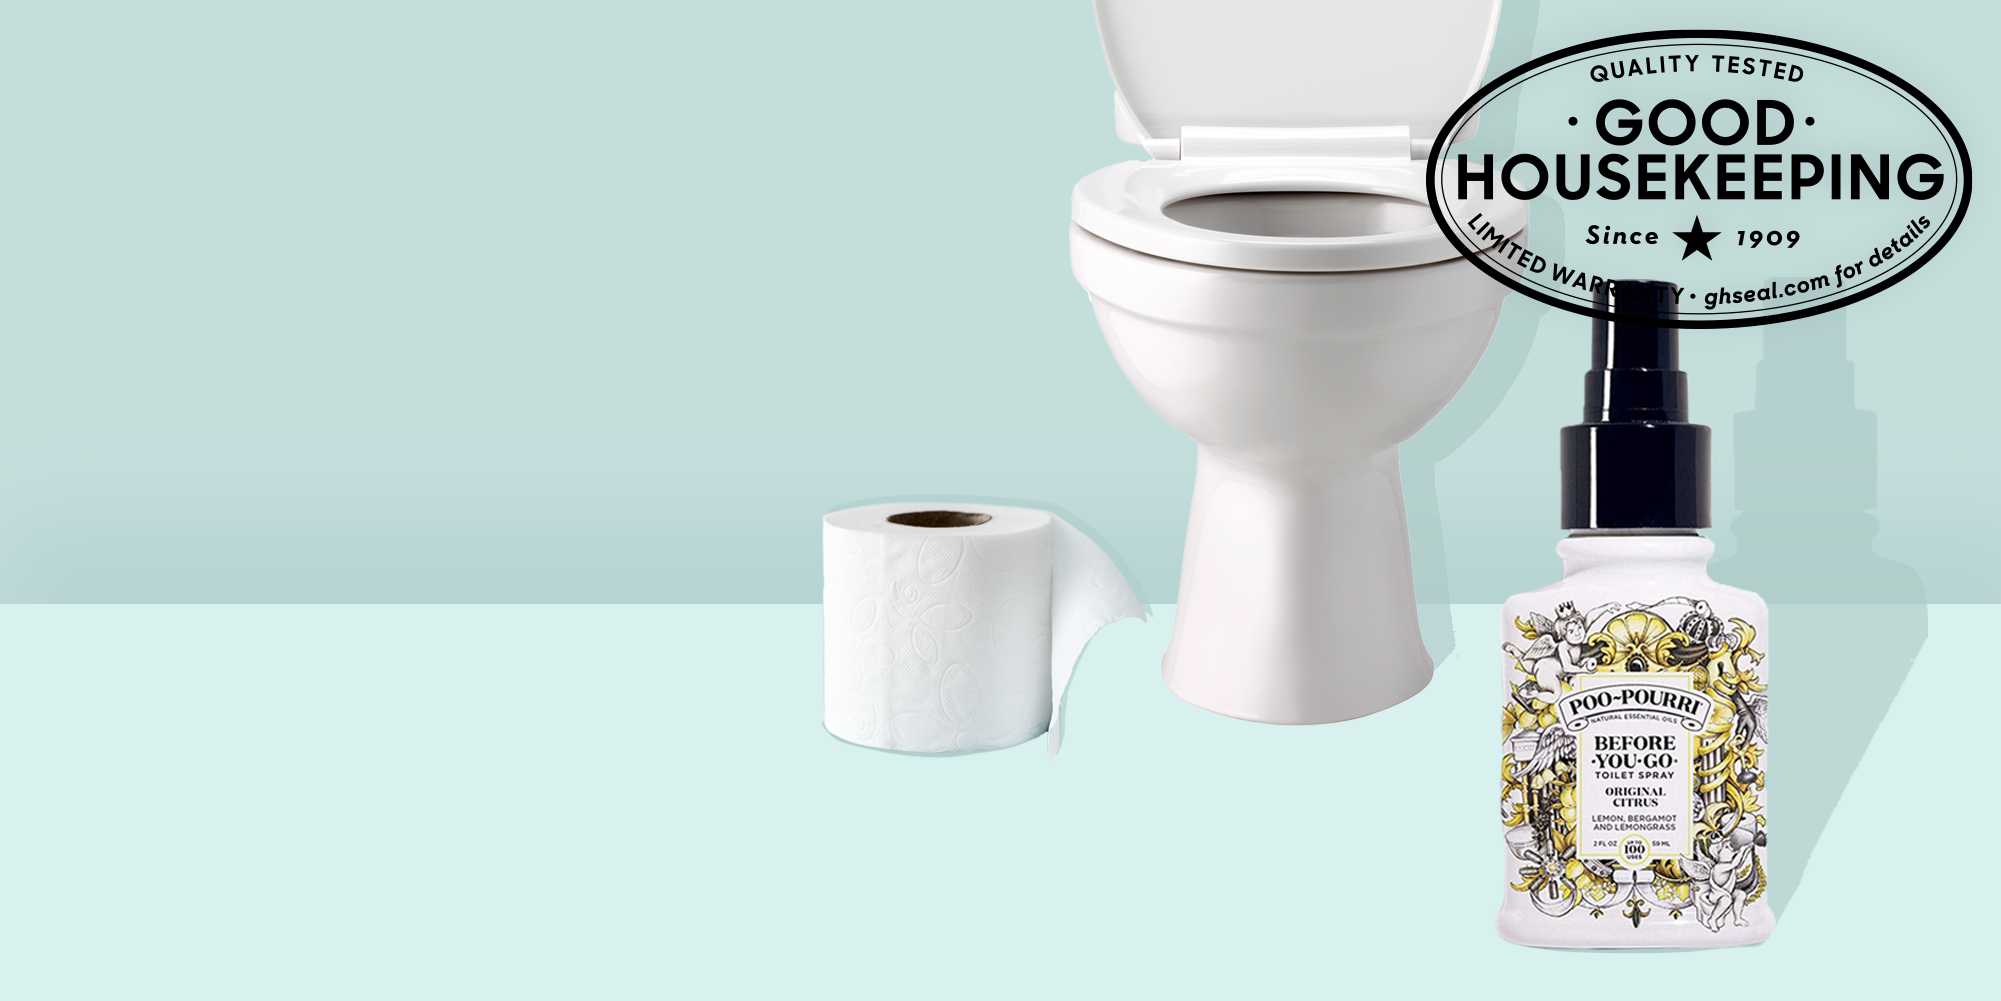 GH Seal Spotlight: Poo-Pourri Toilet Sprays